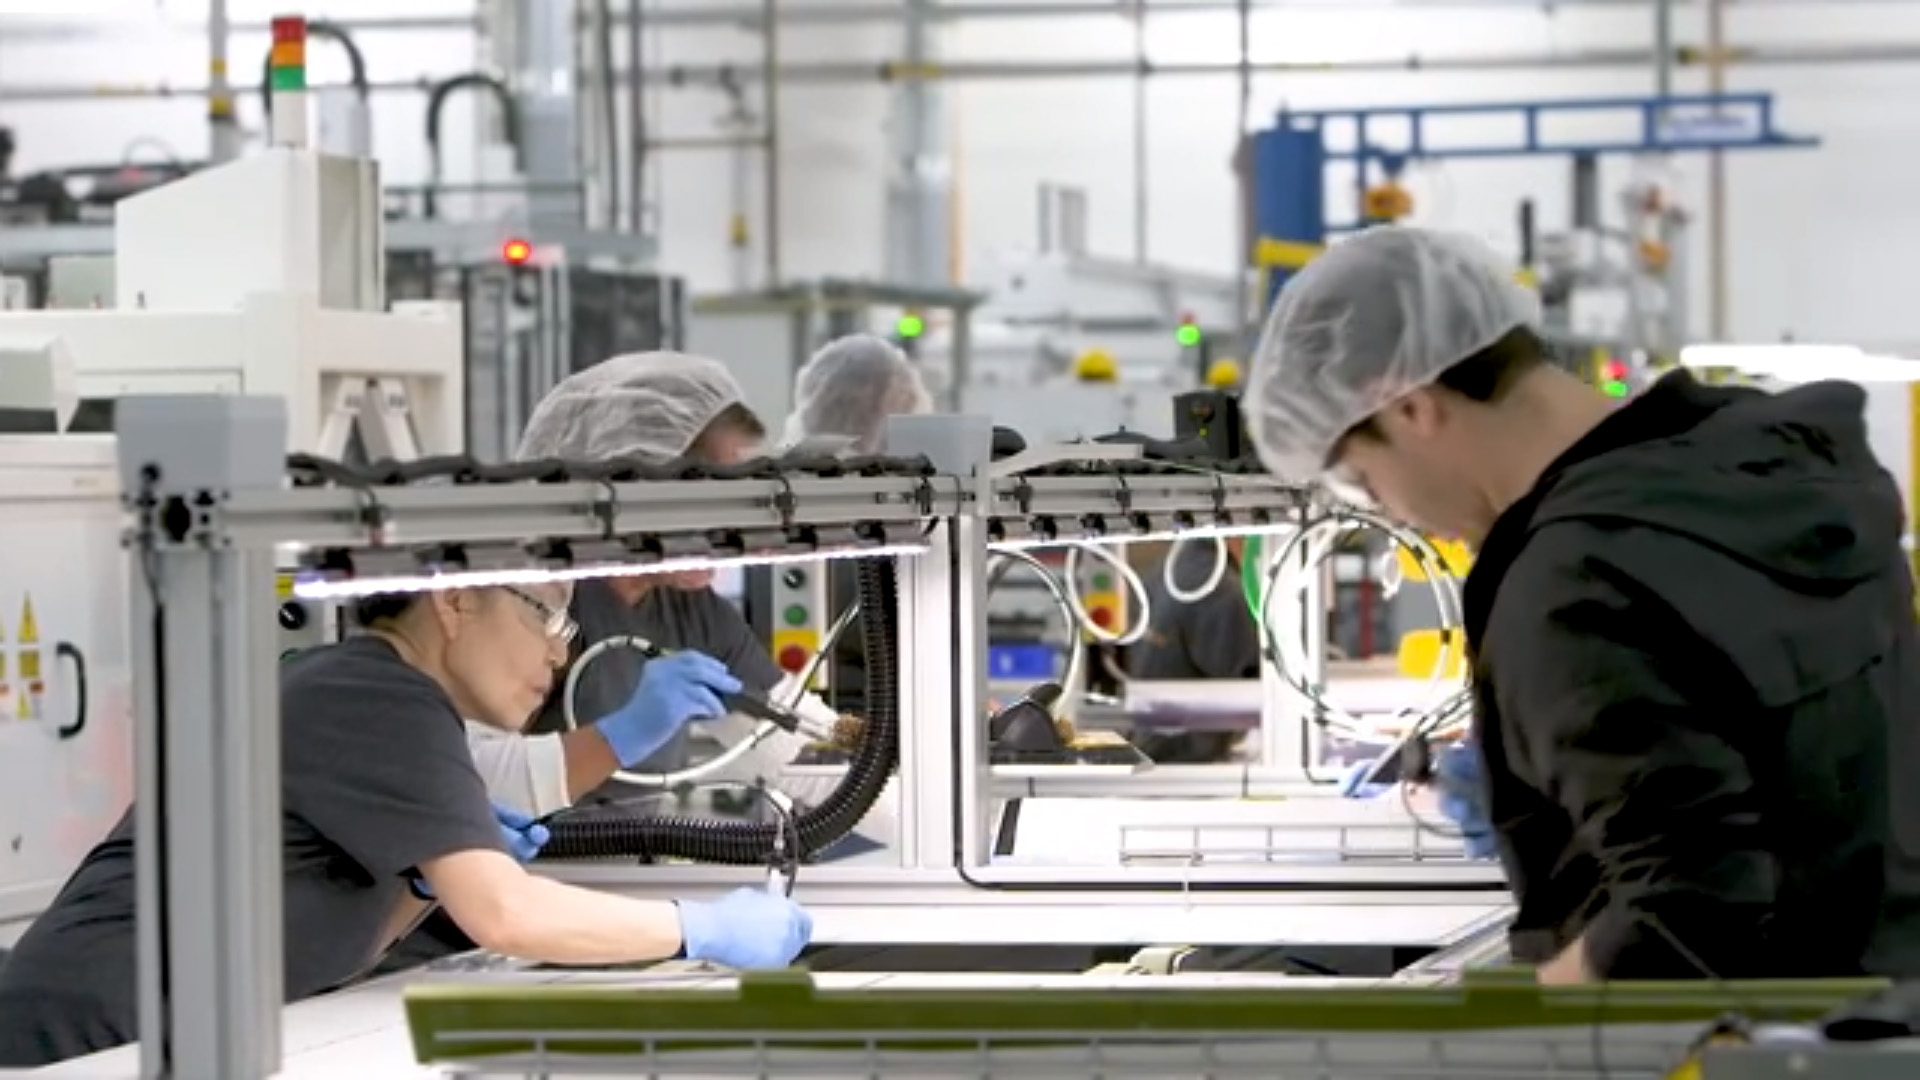 Home-grown innovation is at the core of these 19-percent efficient P-Series solar panels from SunPower, assembled at the company's U.S. manufacturing facility to meet strong, commercial market demand.